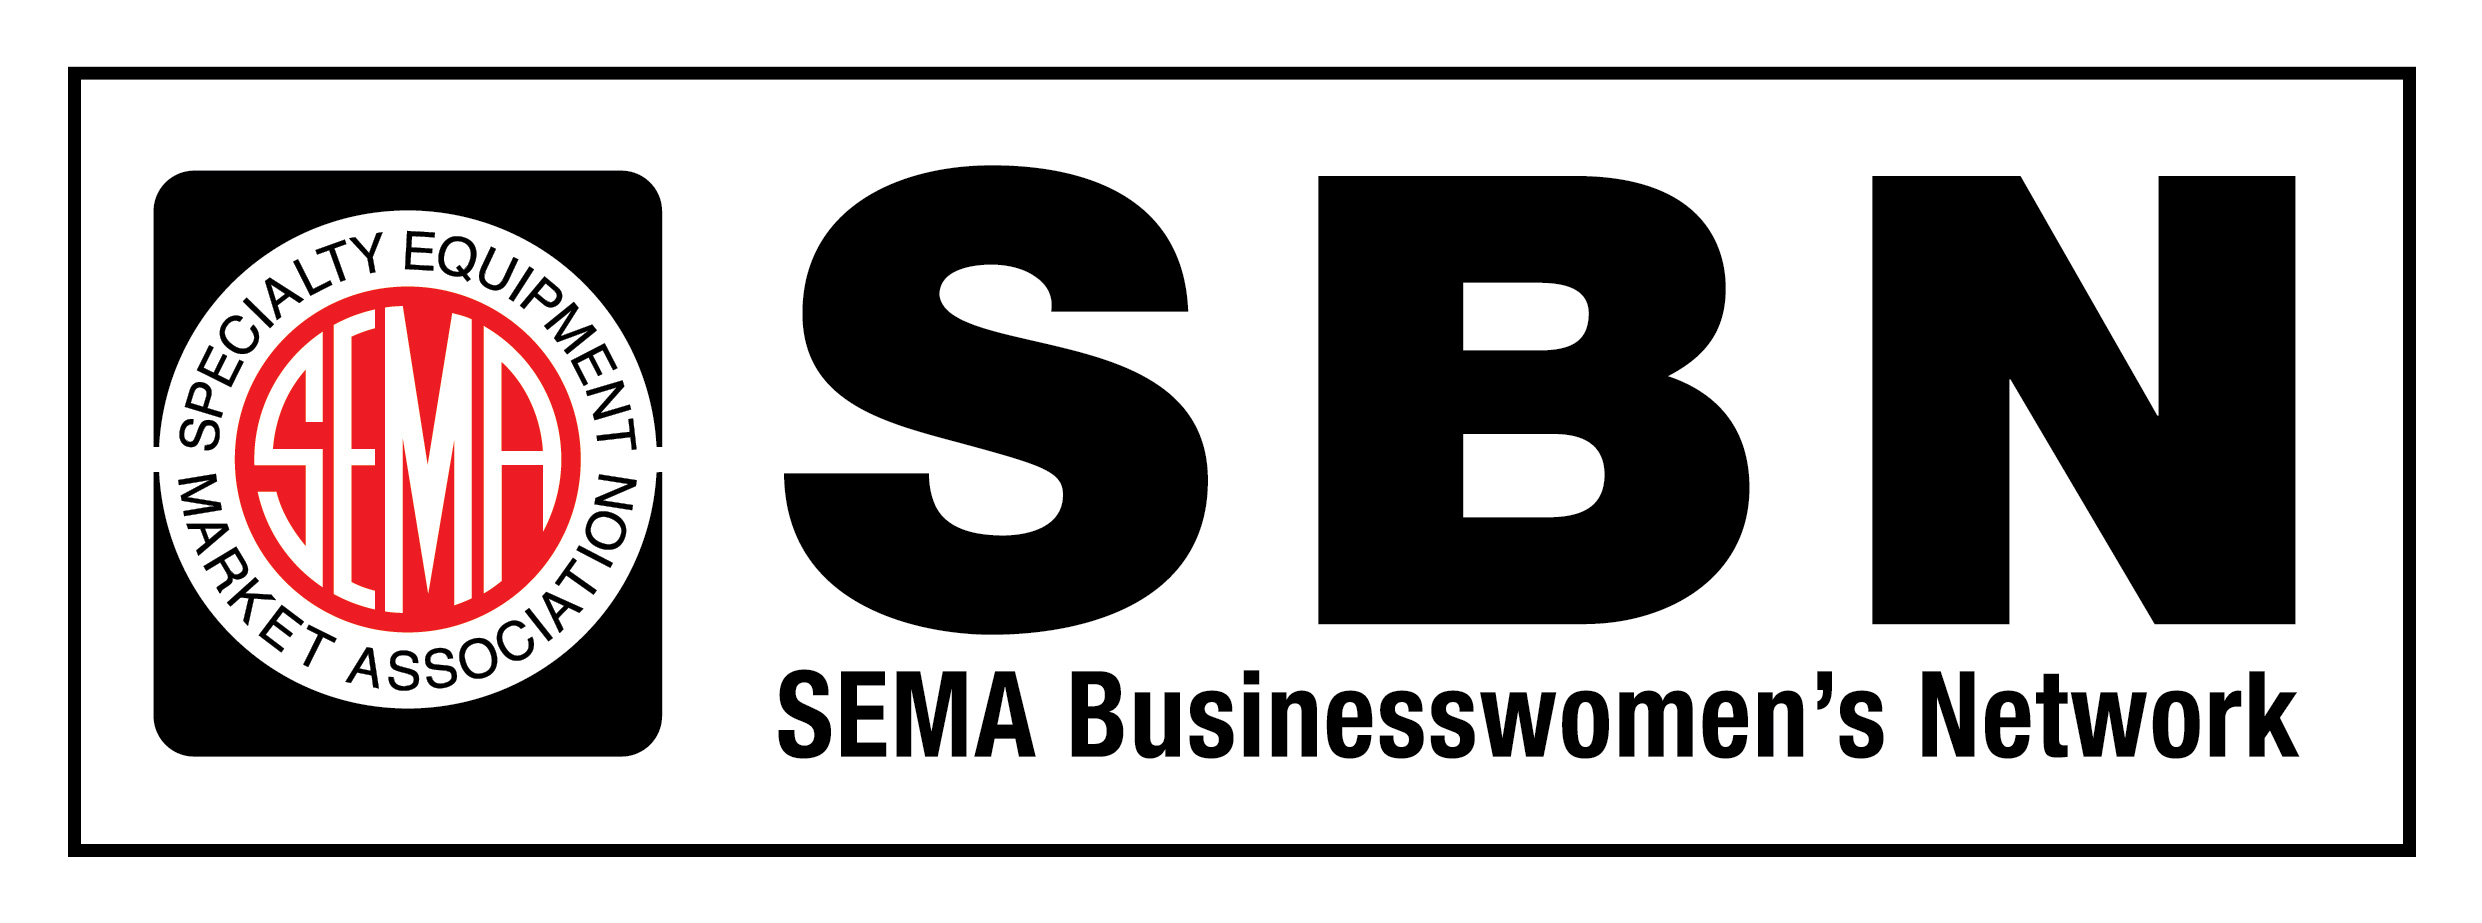 SEMA Businesswomen's Network (SBN) - logo